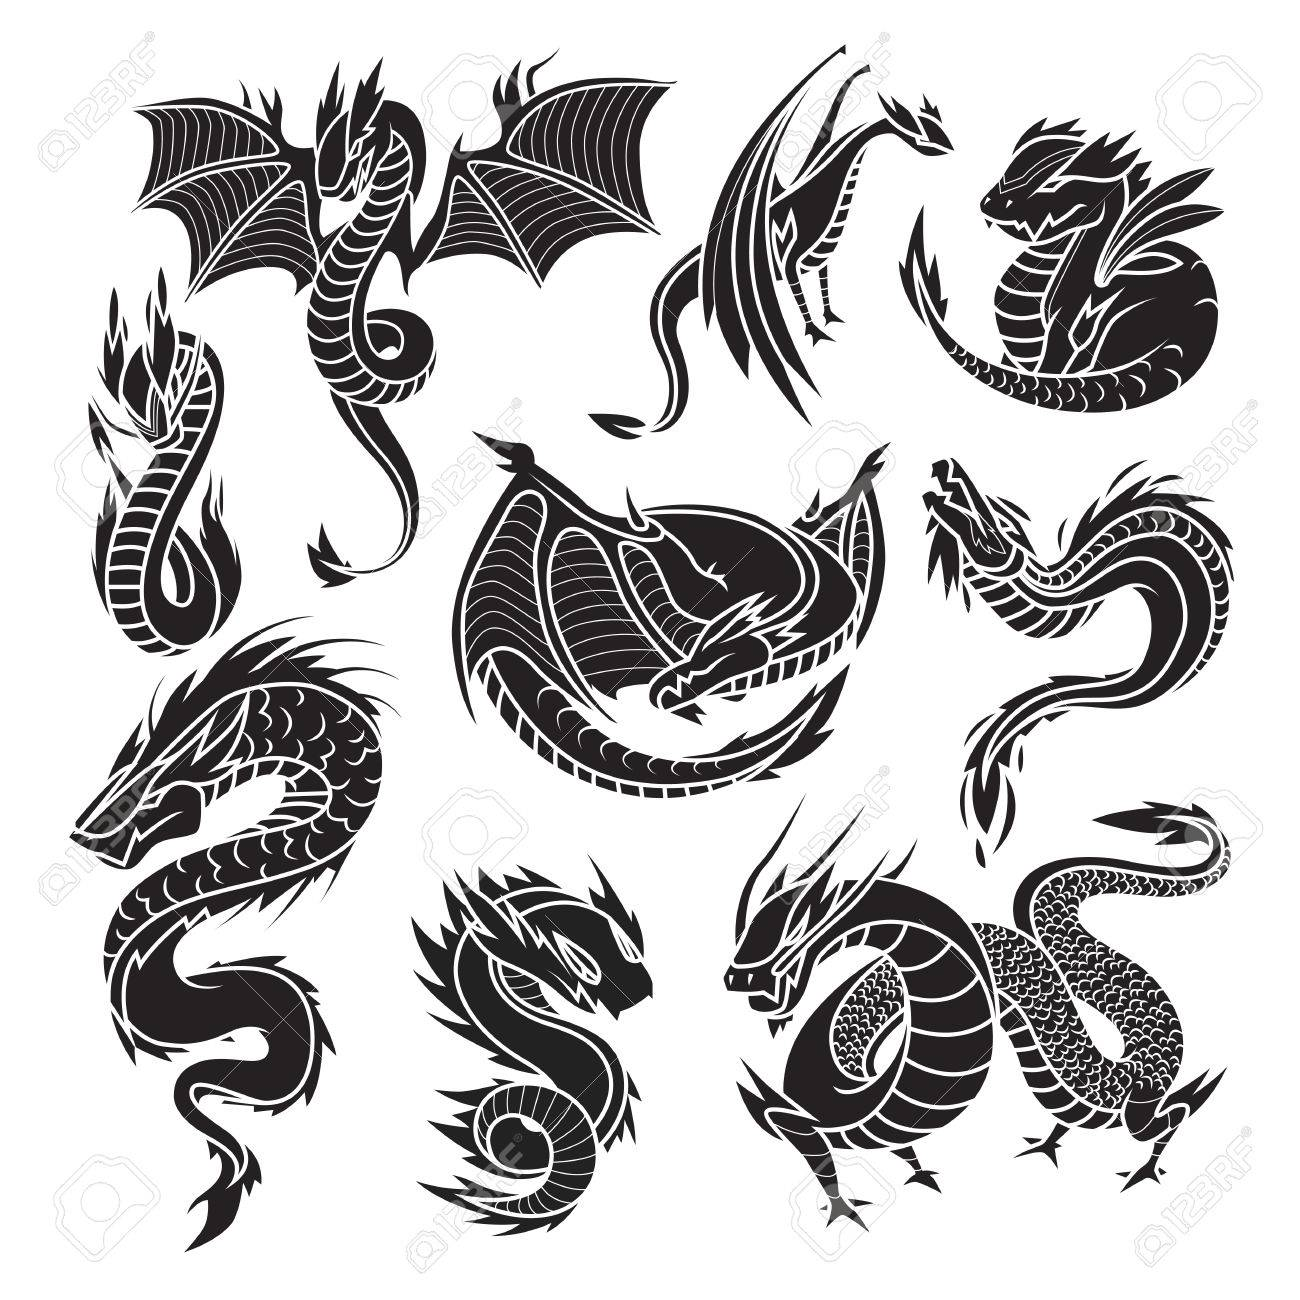 Chinese Black Dragon Silhouettes On White Background Tattoo